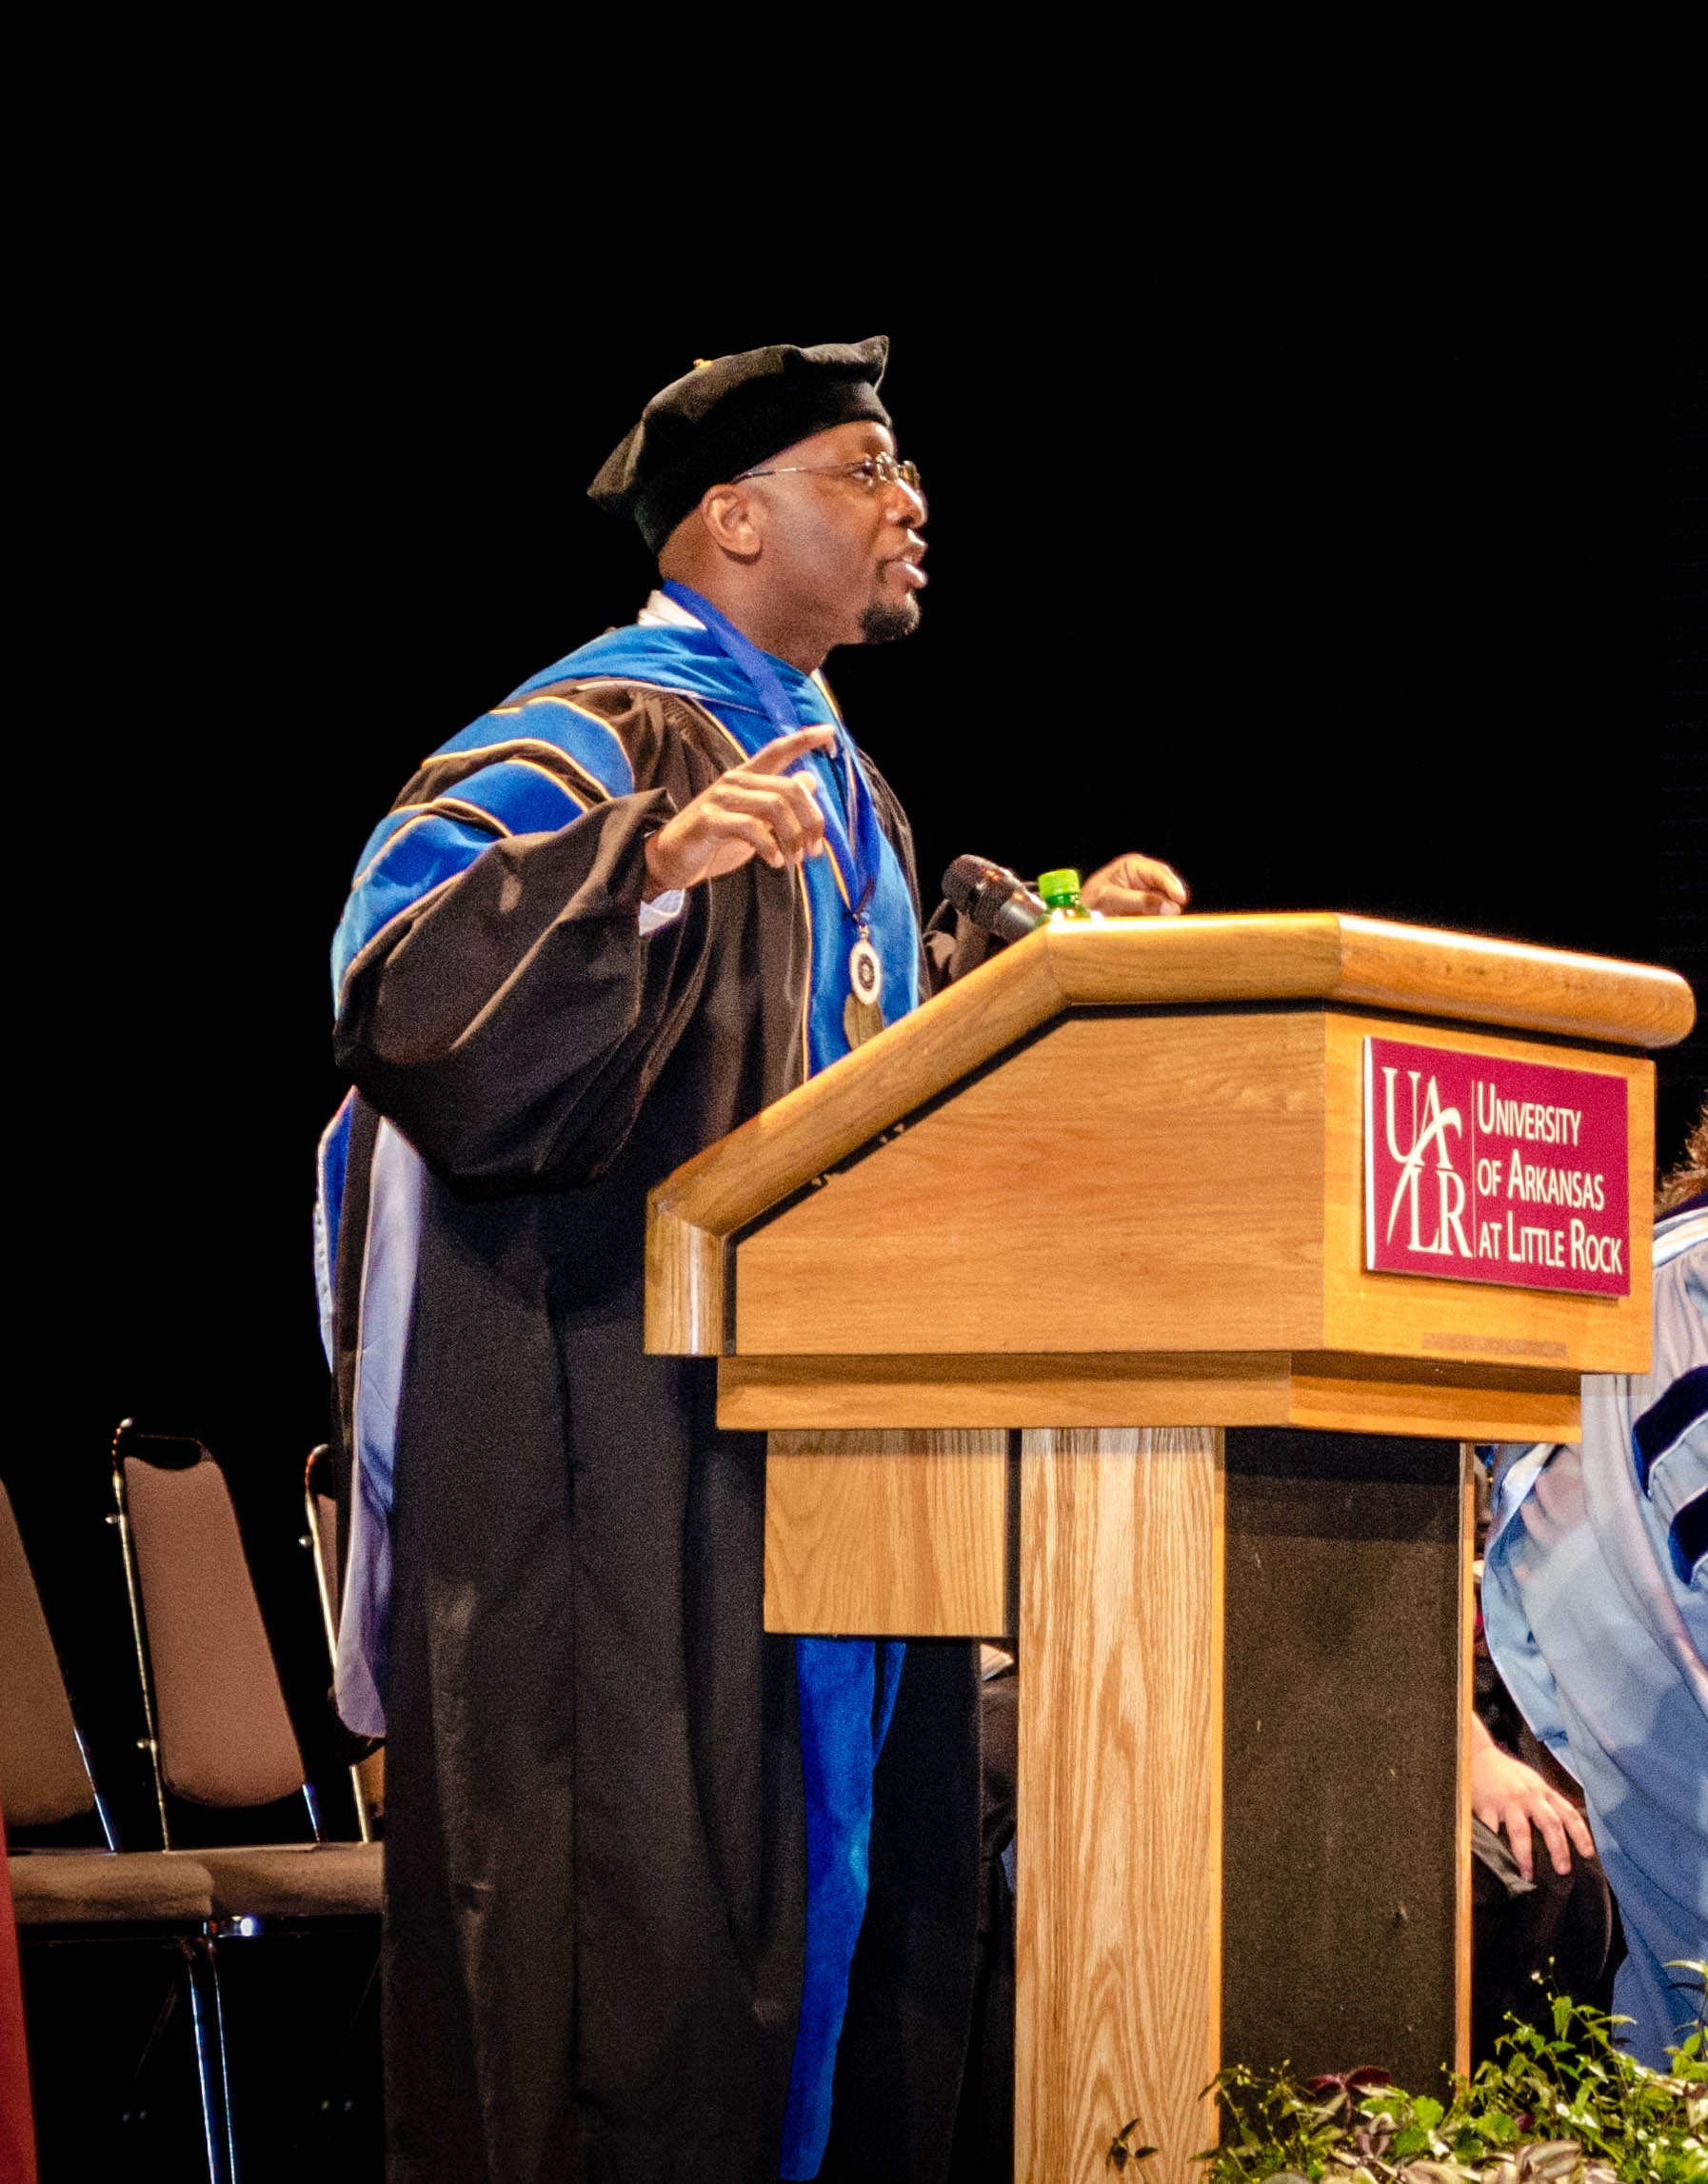 Miller UALR Convocation Speech Close Up.jpg